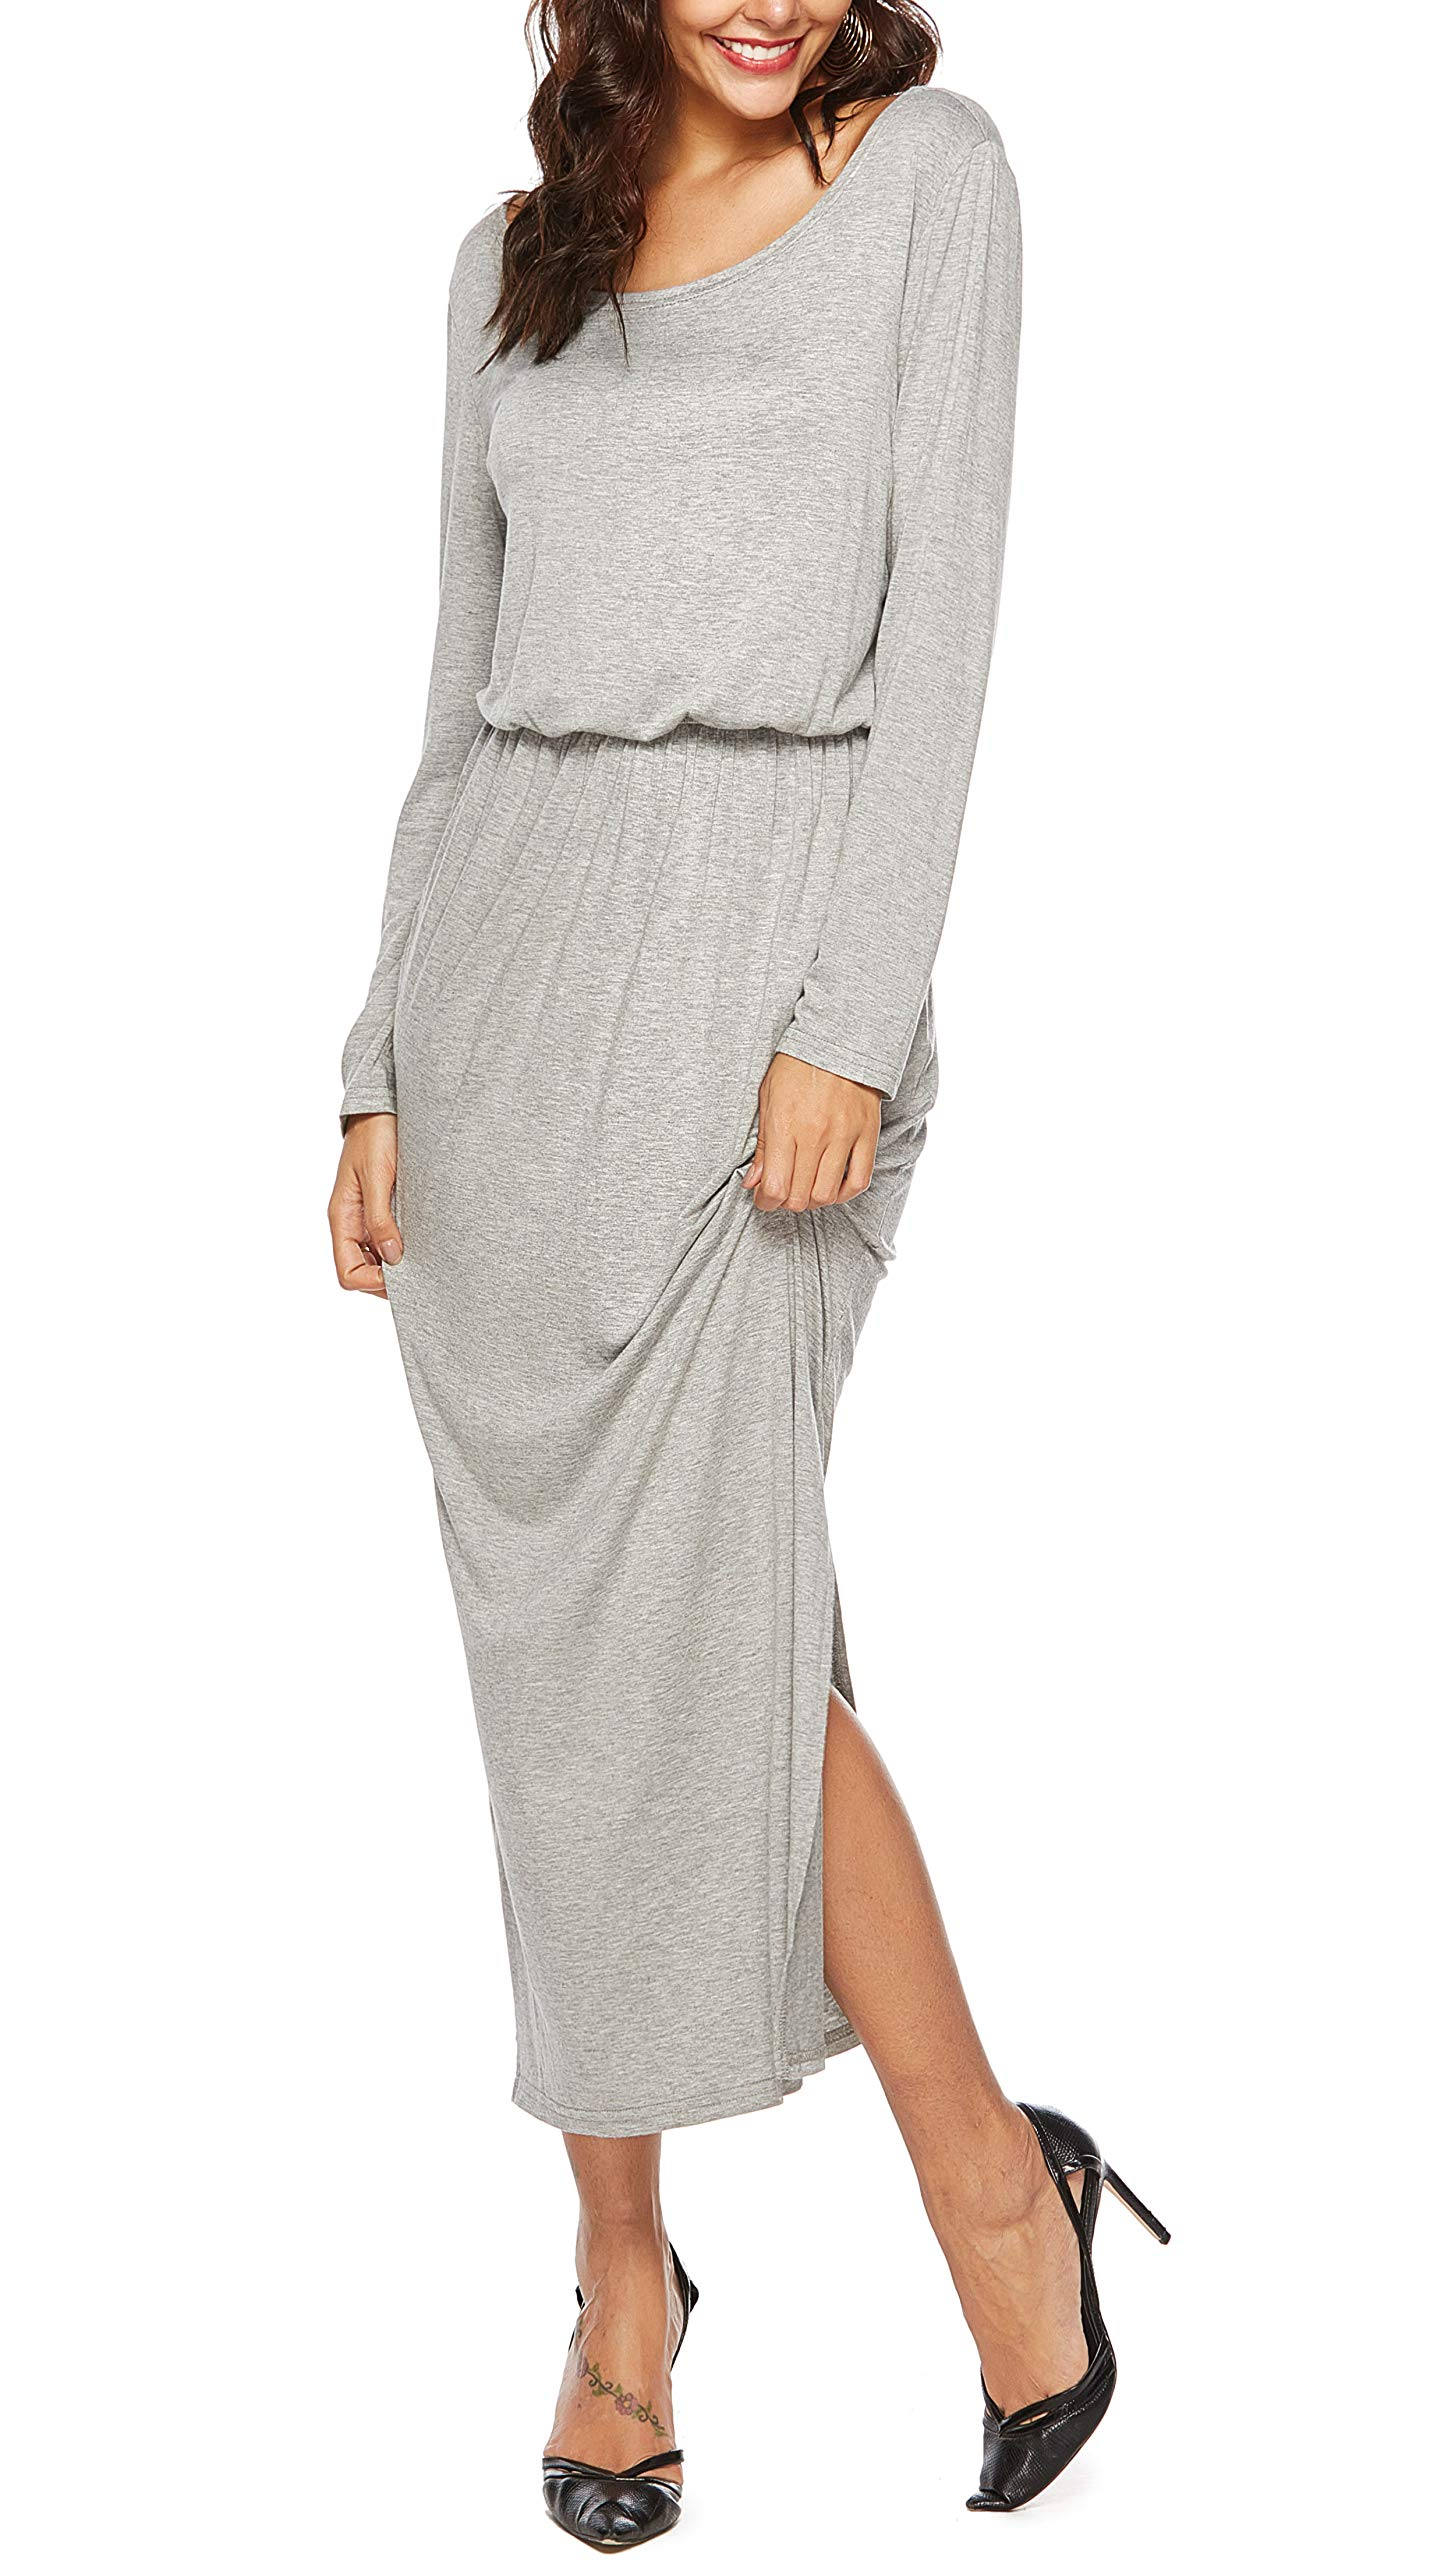 4f46bf58a7 titame Women Fall Casual Long Sleeve Flowy Maxi Dress with Pockets Light  Gray XL